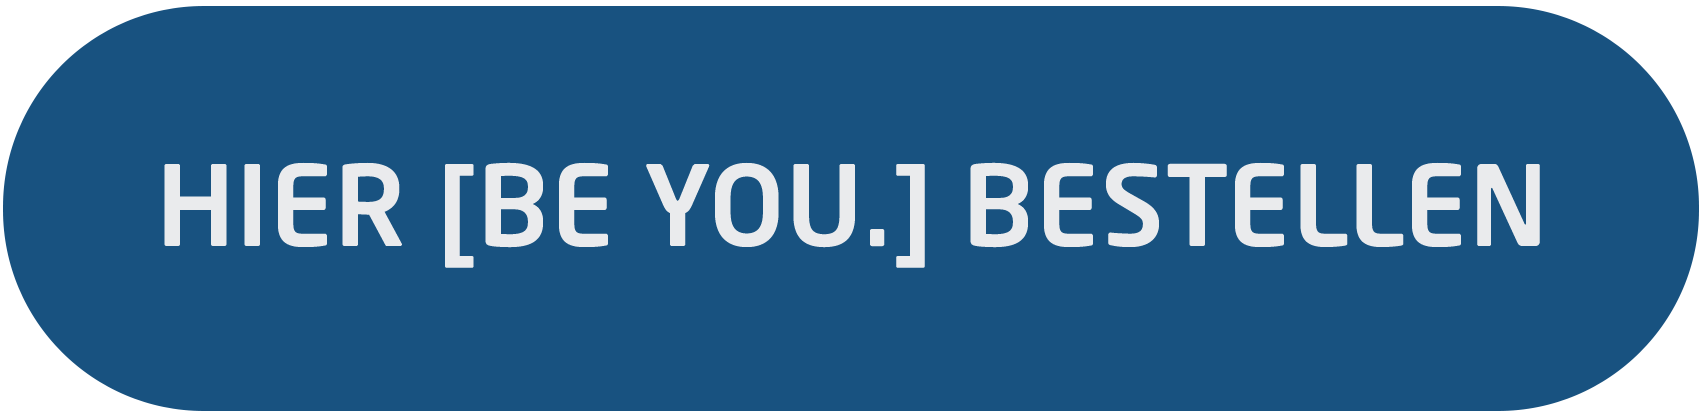 be-you category link